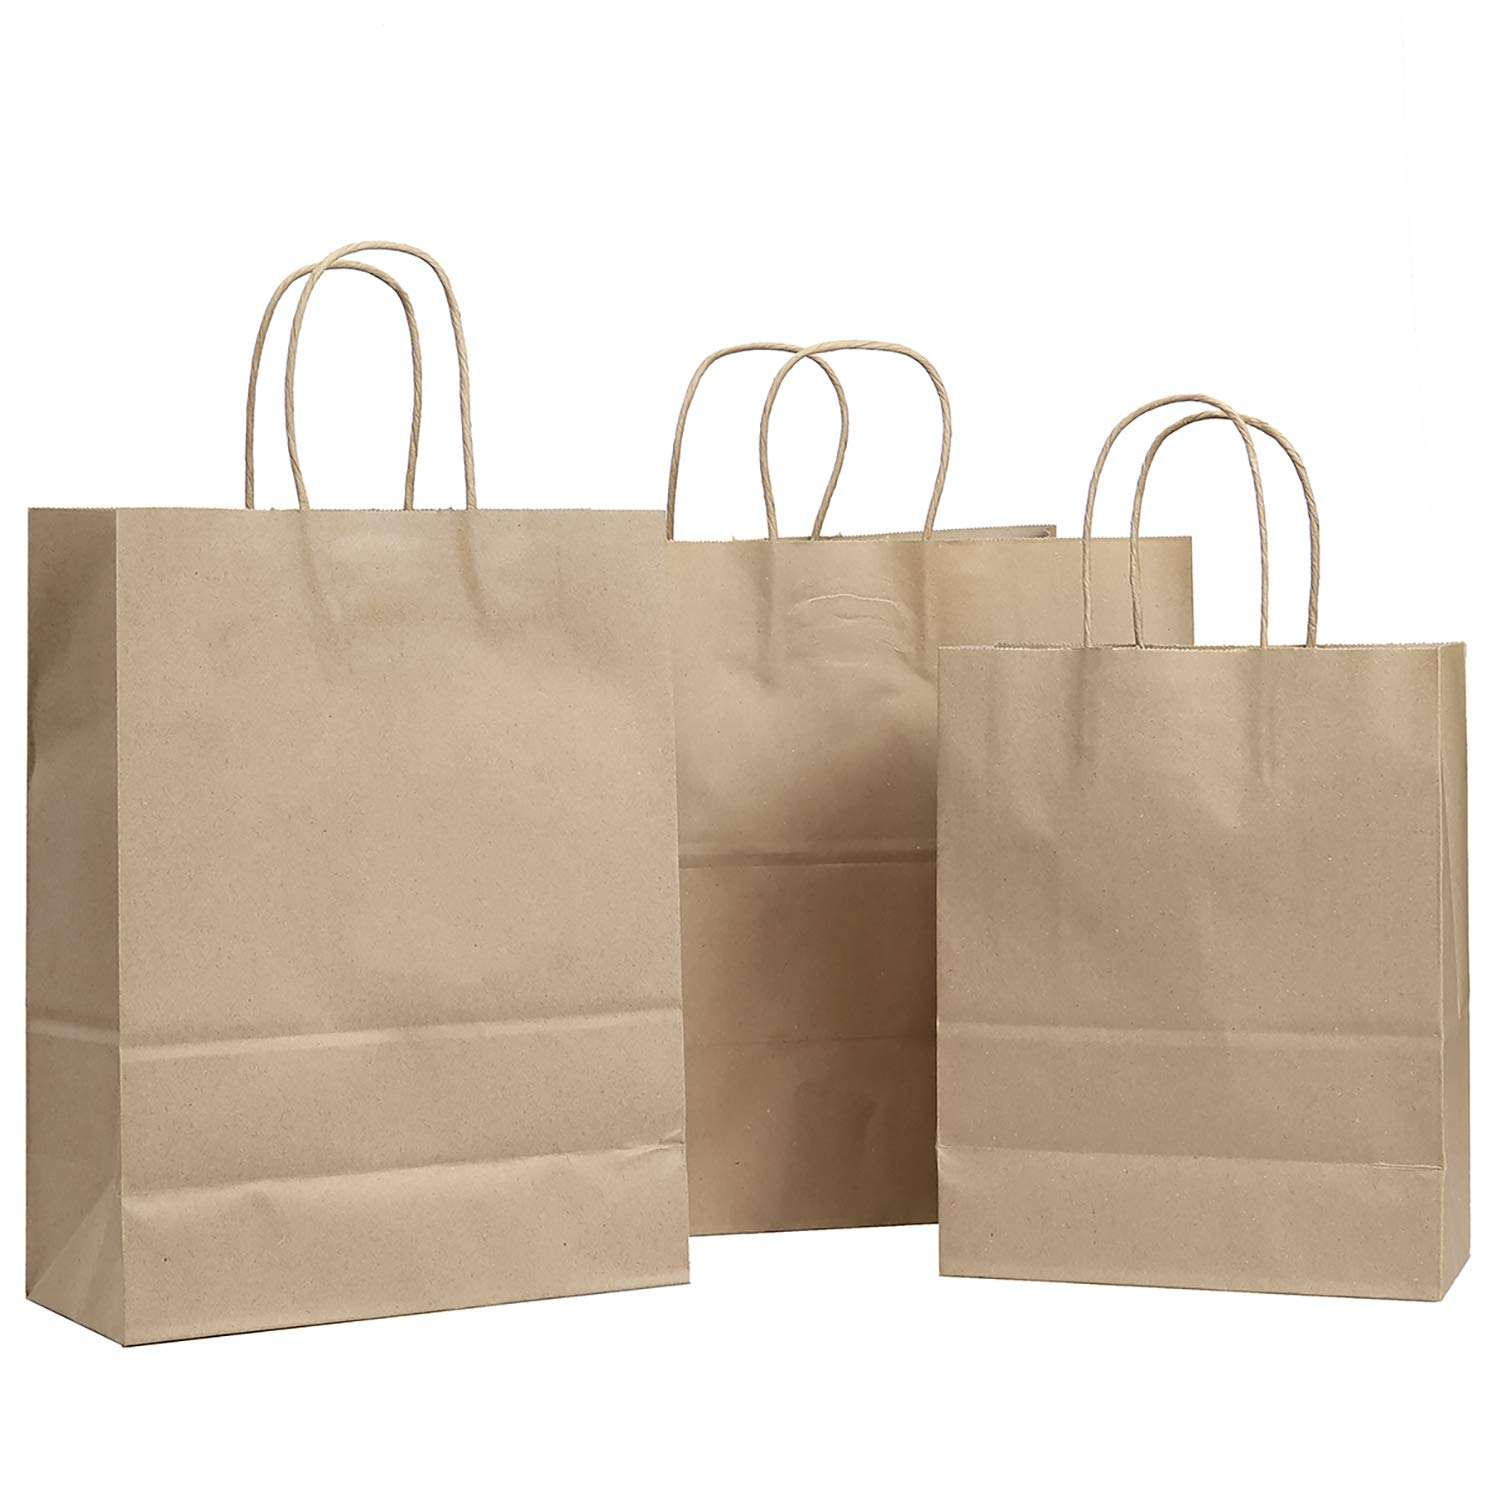 The promotion of Kraft Paper Bags Restaurant Take Out Bags with Handles Gift Grocery Party wholesale